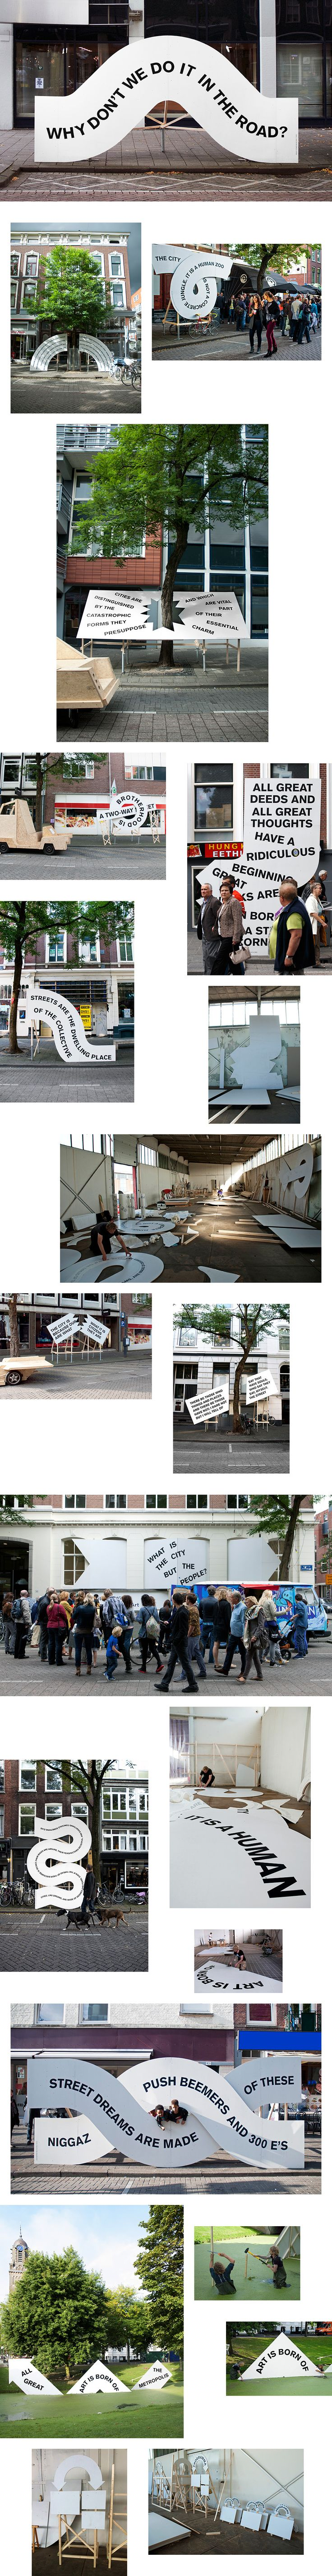 Festival De Wereld van Witte de With entitled The Street – LIve Issue! curated by Feireiss looks into the subject of the 'street'.